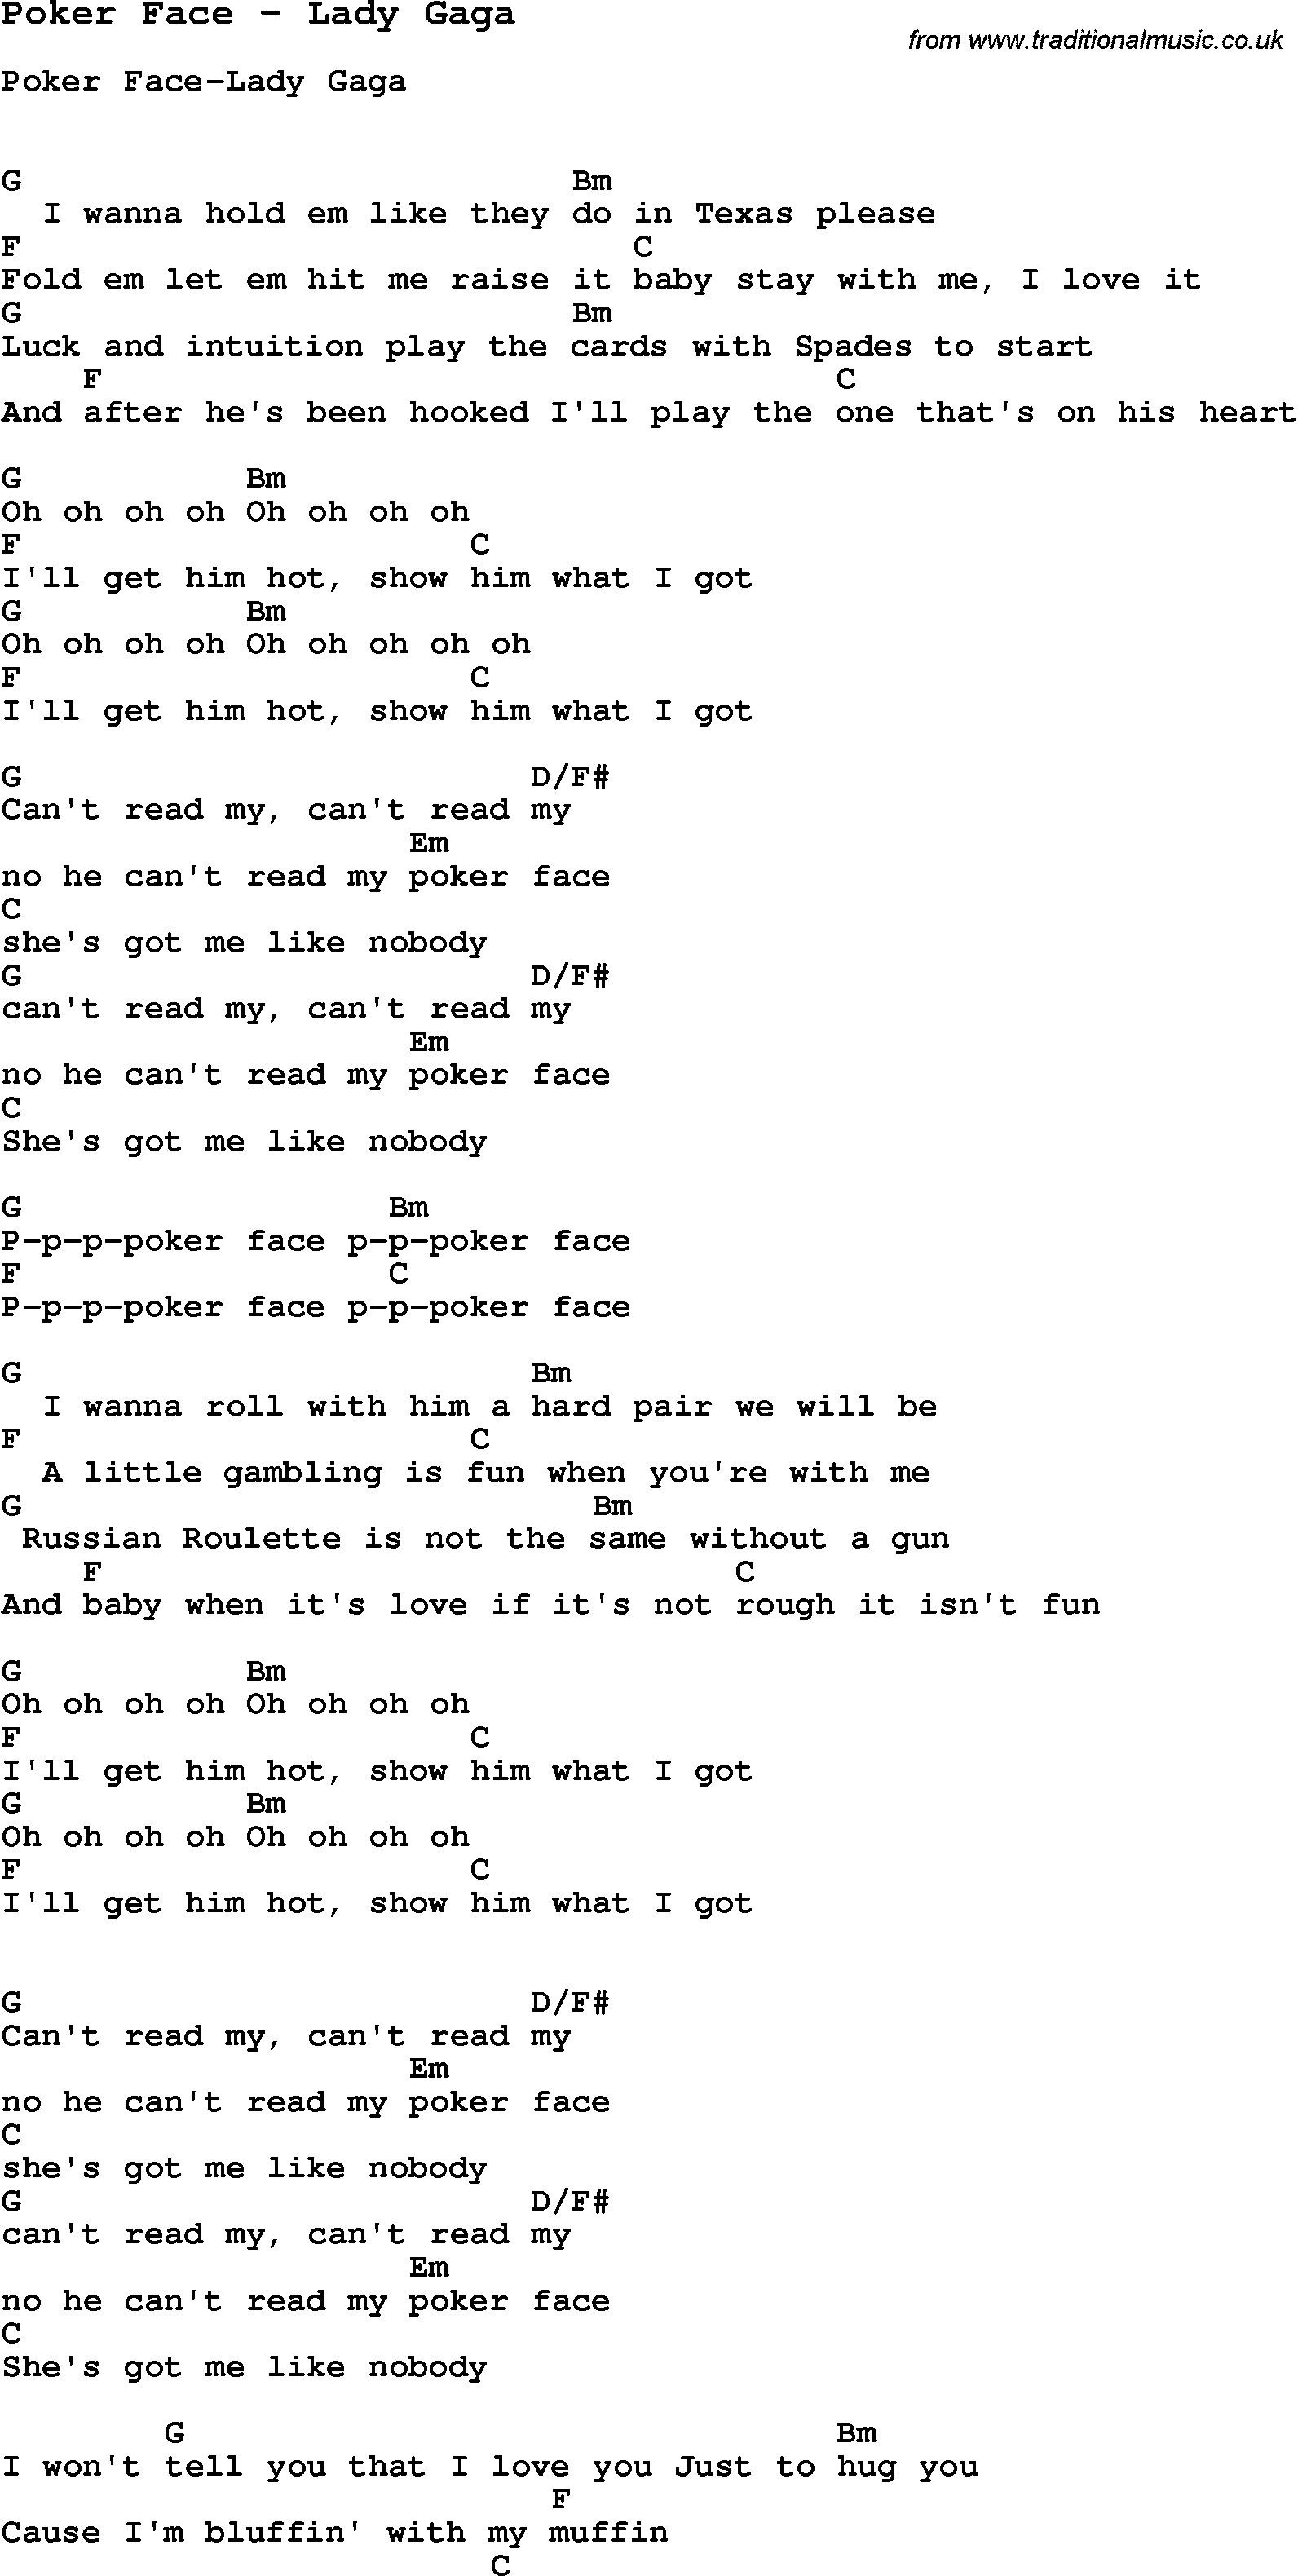 Lyrics to lady gaga poker face sarah shaber louise gamble